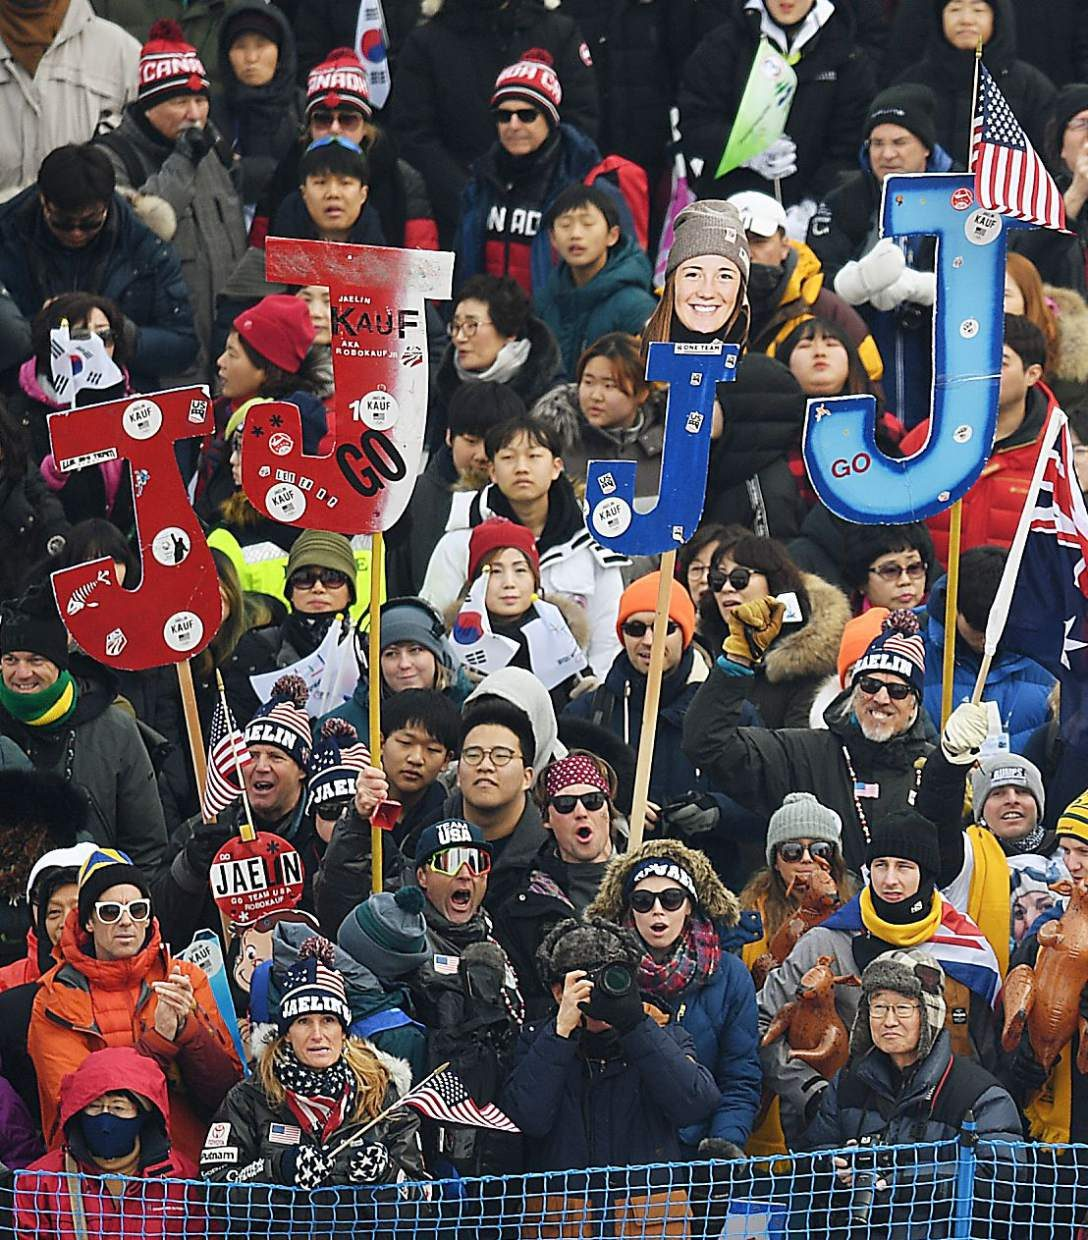 Kauf among 3 Americans to advance as women's moguls Olympic event